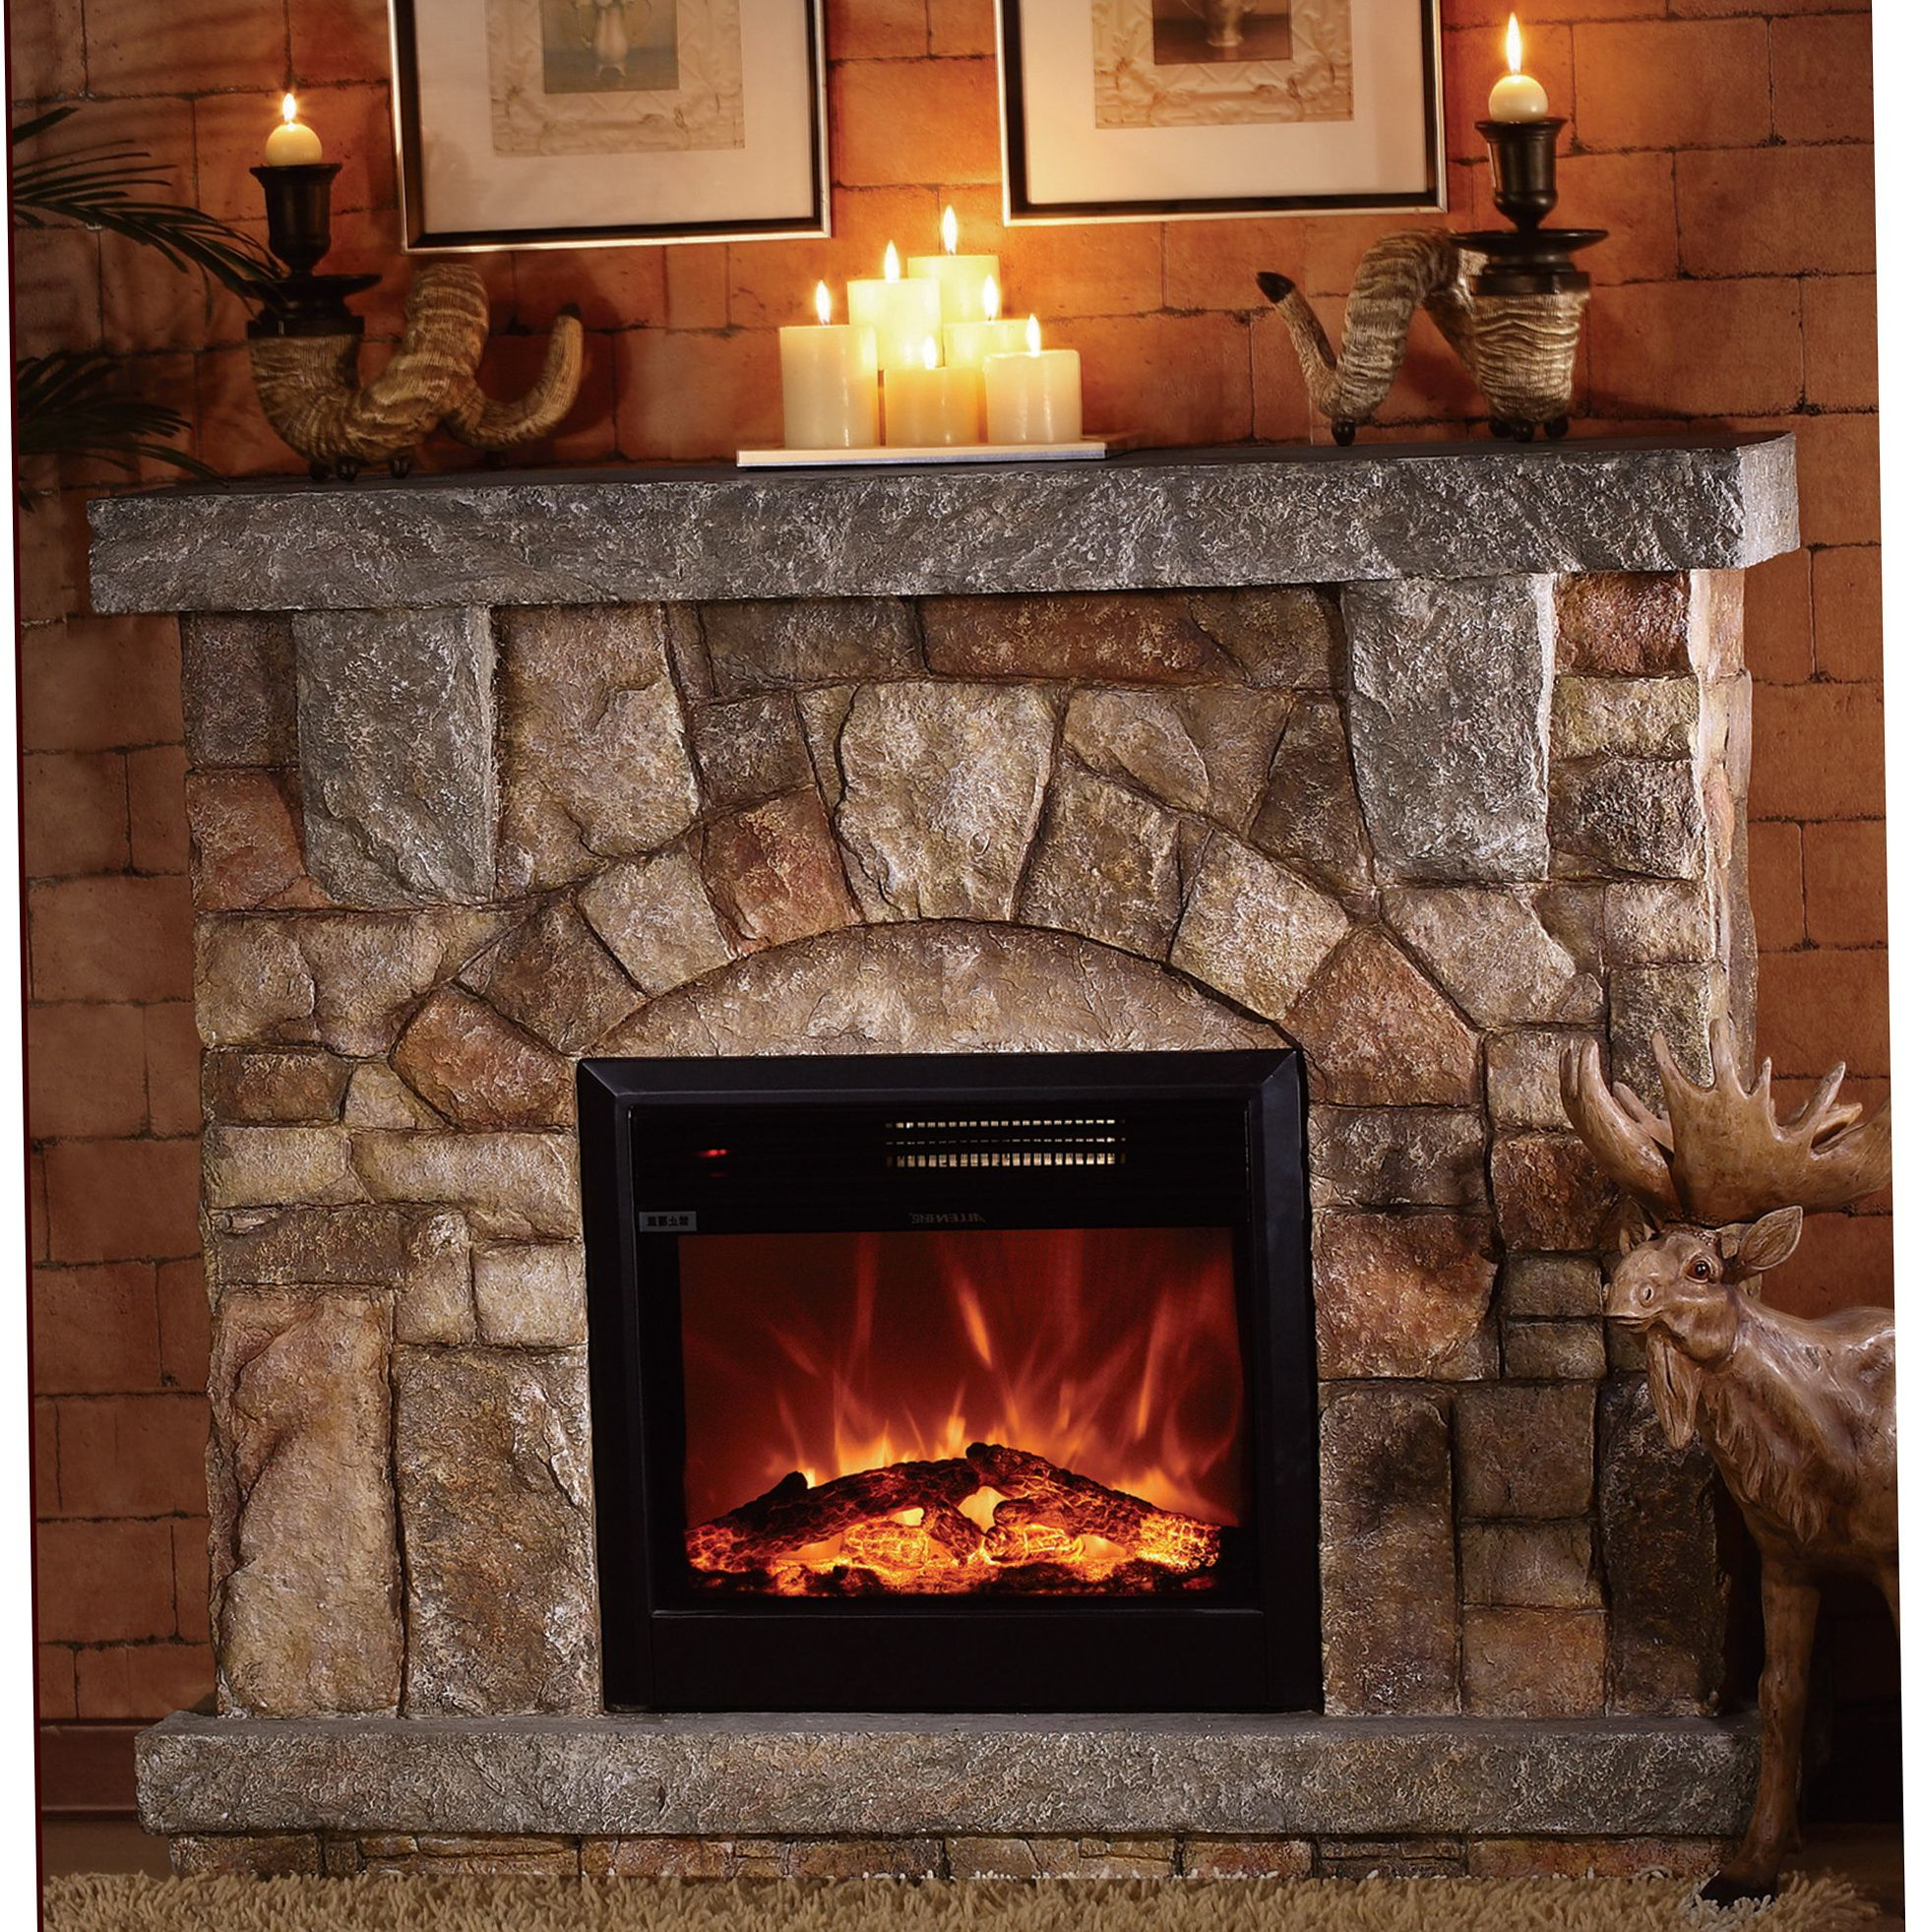 Depiction Of Stone Electric Fireplace For Modern Rustic Home Designs Stone Electric Fireplace Electric Fireplace